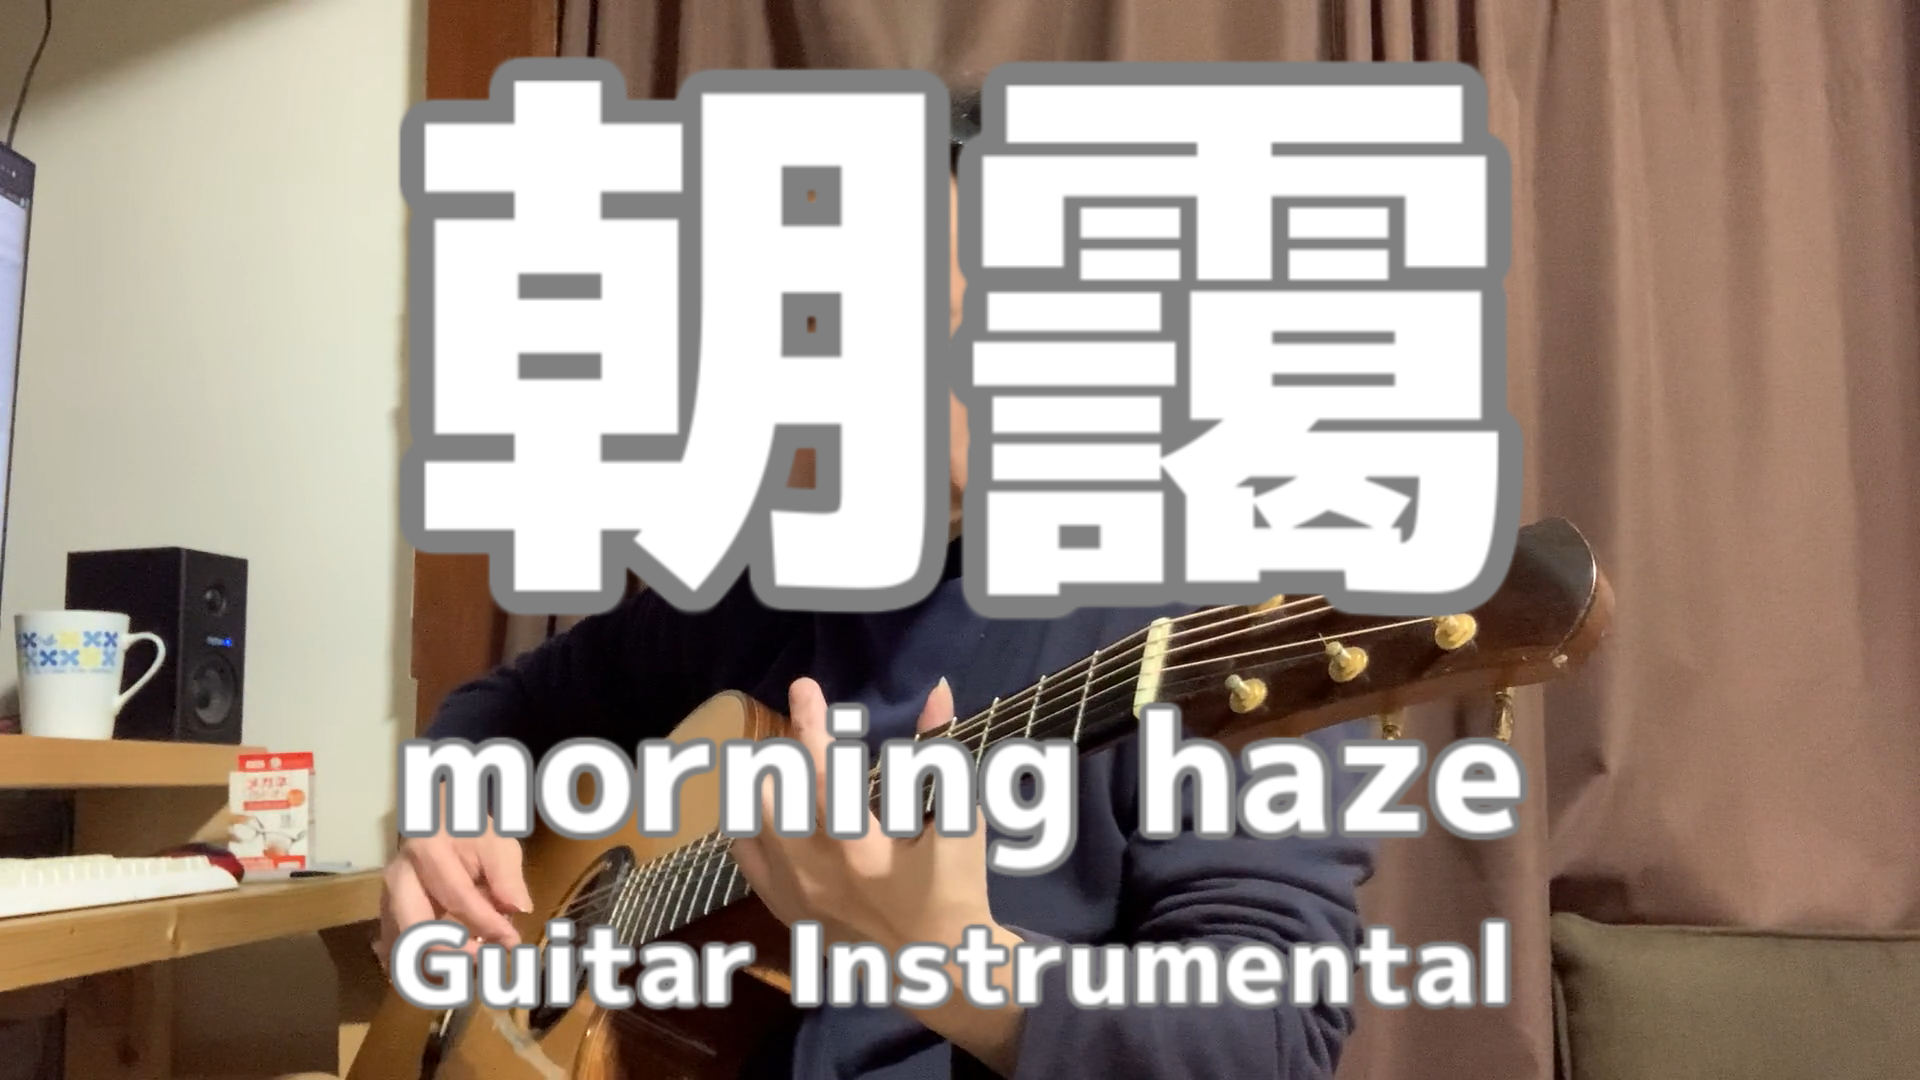 朝靄-morning haze-Guitar Instrumental